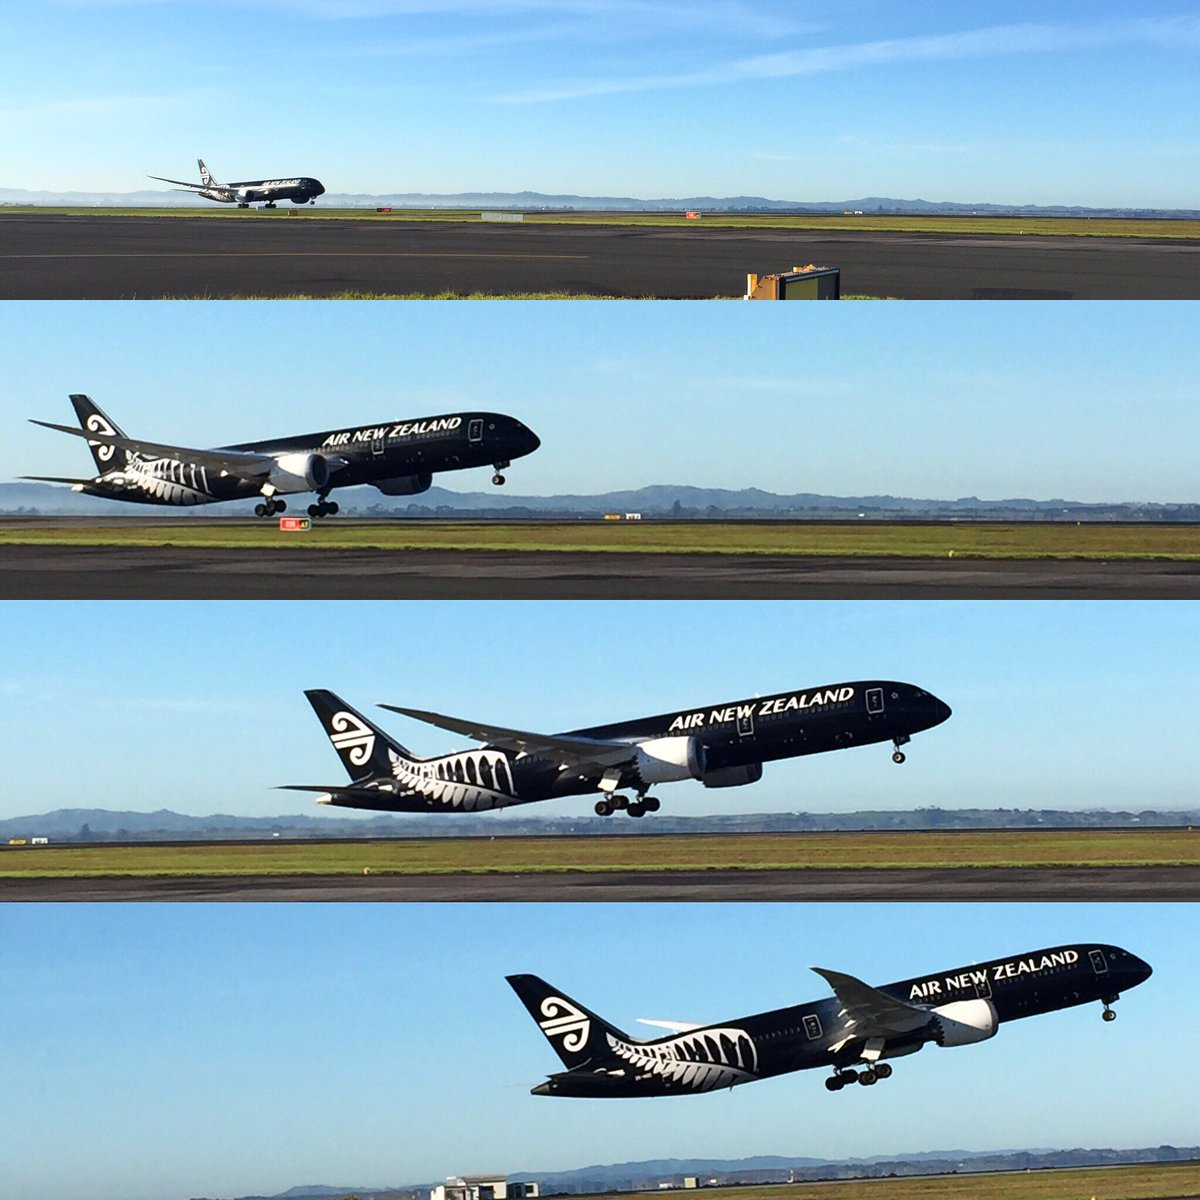 .@FlyAirNZ Dreamliner takeoff to Tokyo at Auckland Airport this morning https://t.co/oTP282NzSK